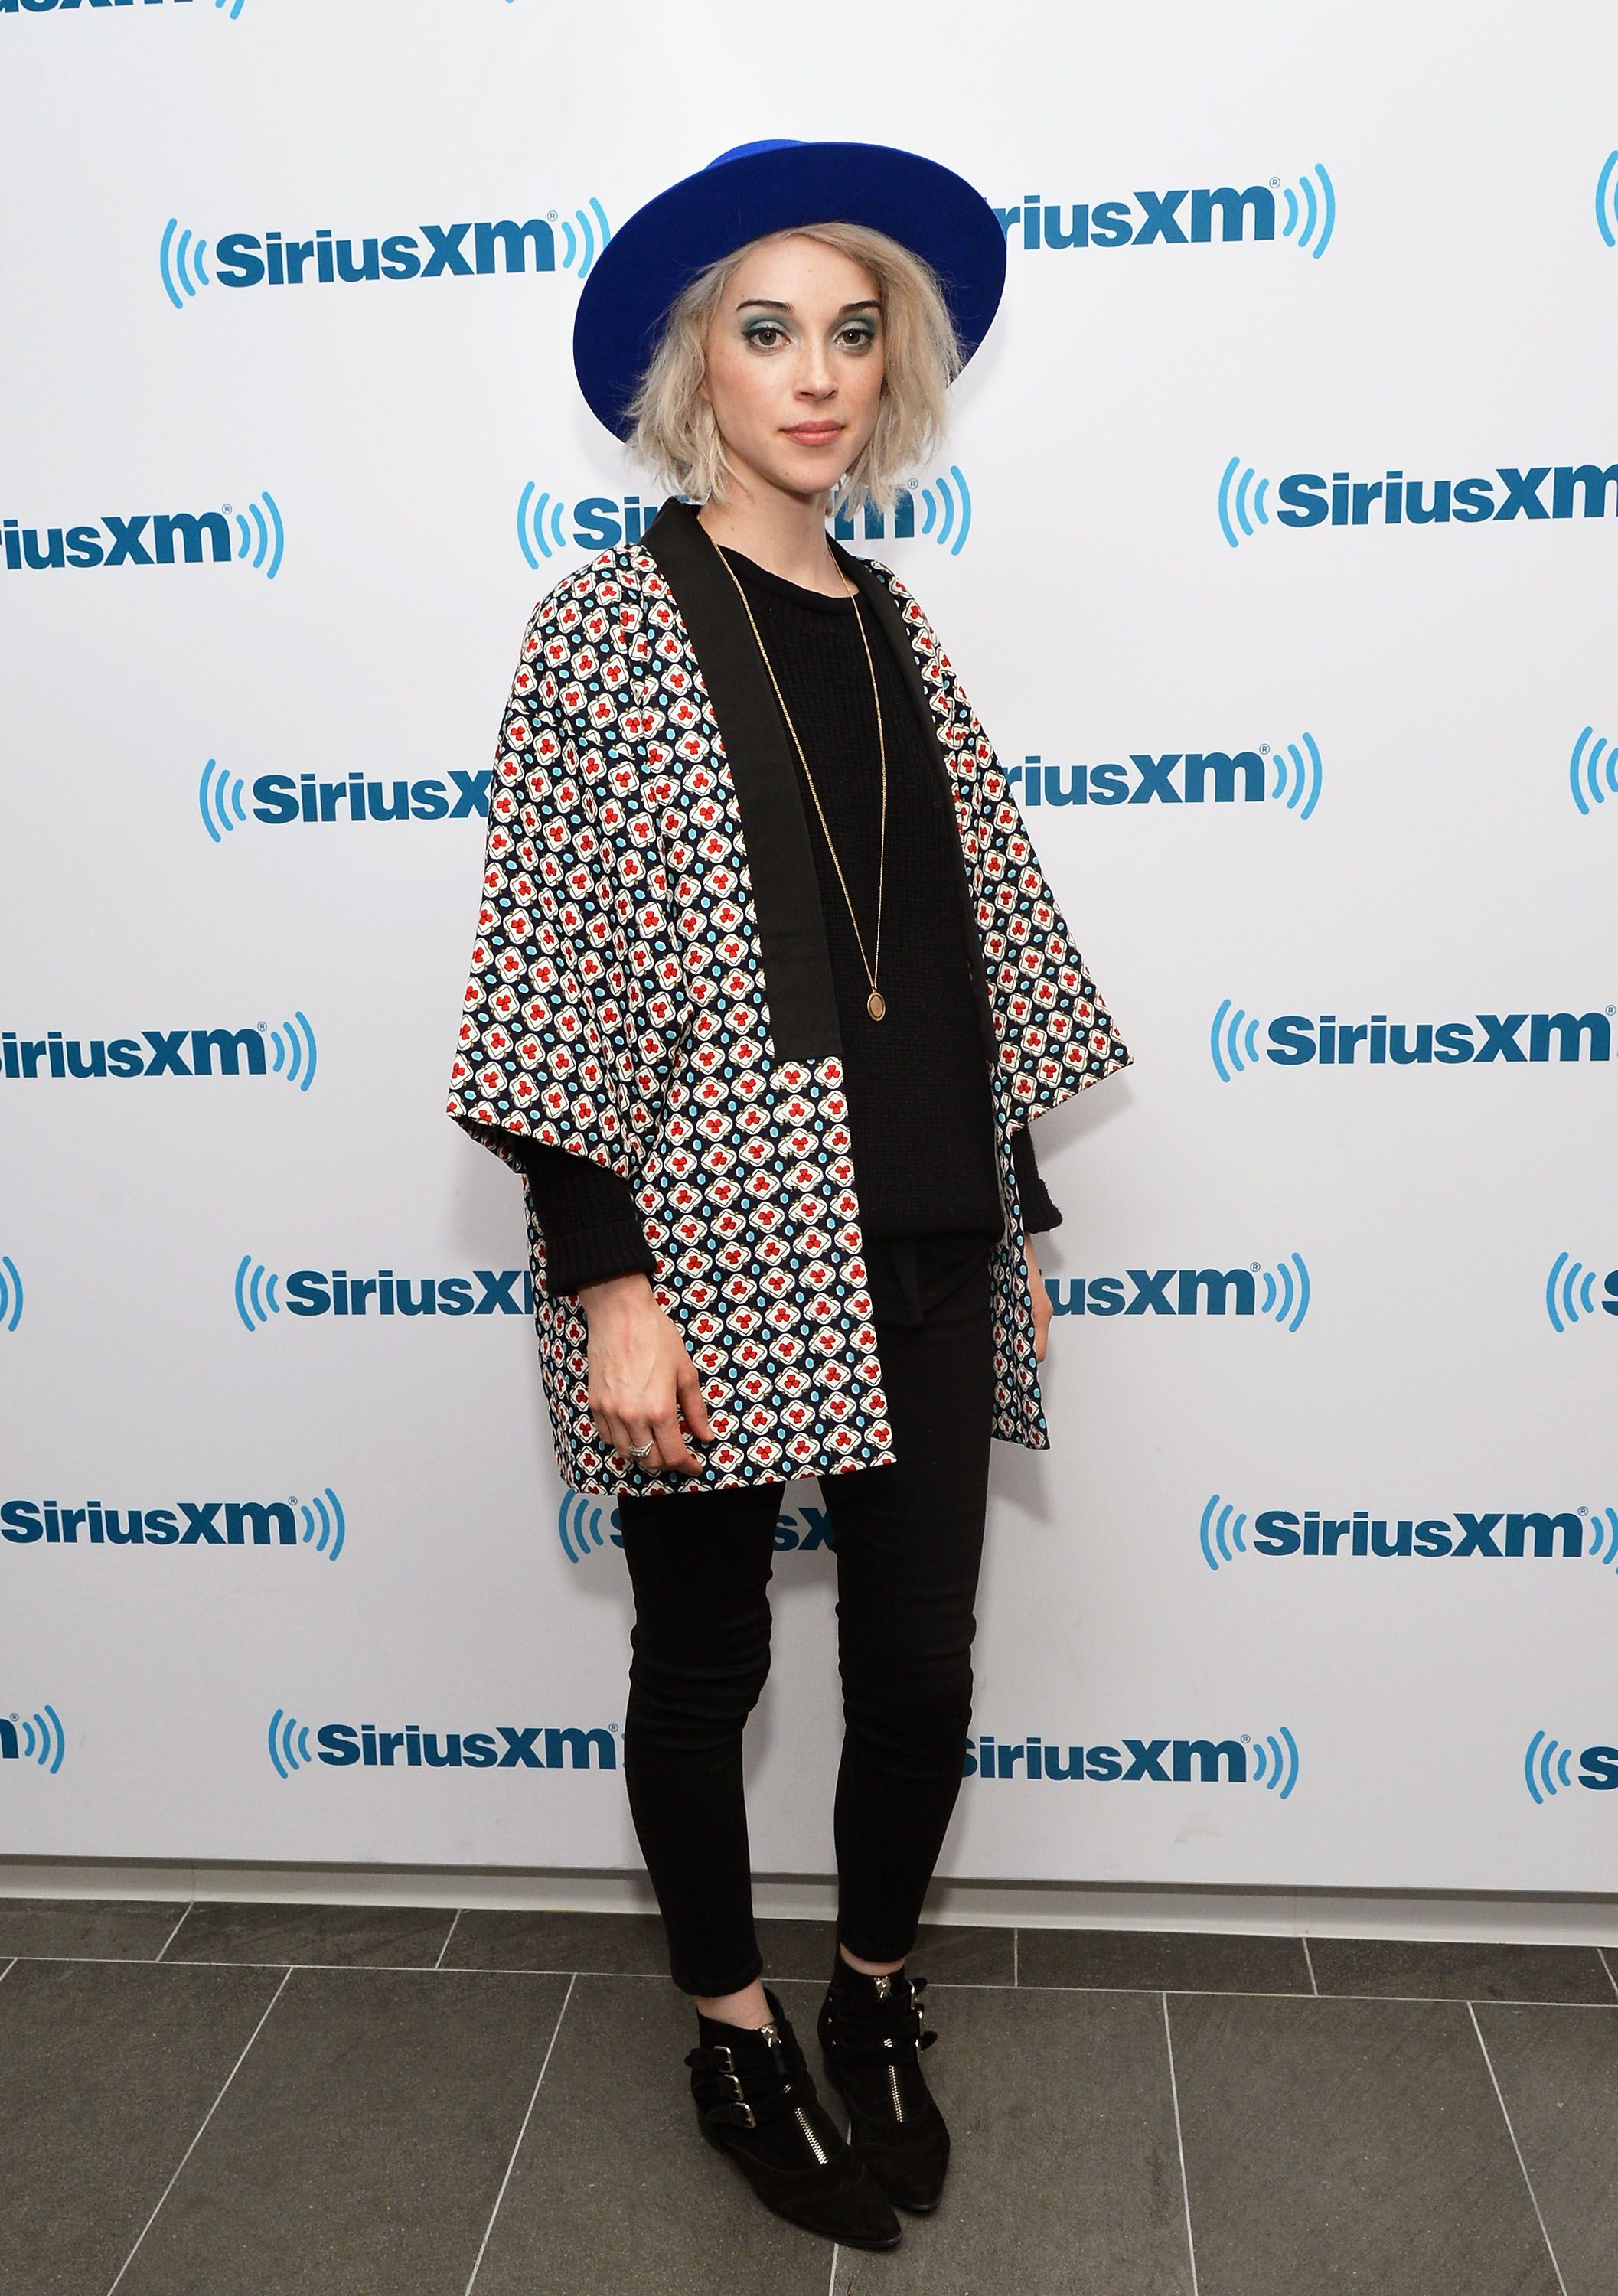 Wearing all-black, St. Vincent pairs an origami-like geometric coat with a wide-brimmed royal blue boater hat for an unexpected pop of color.   - MarieClaire.com